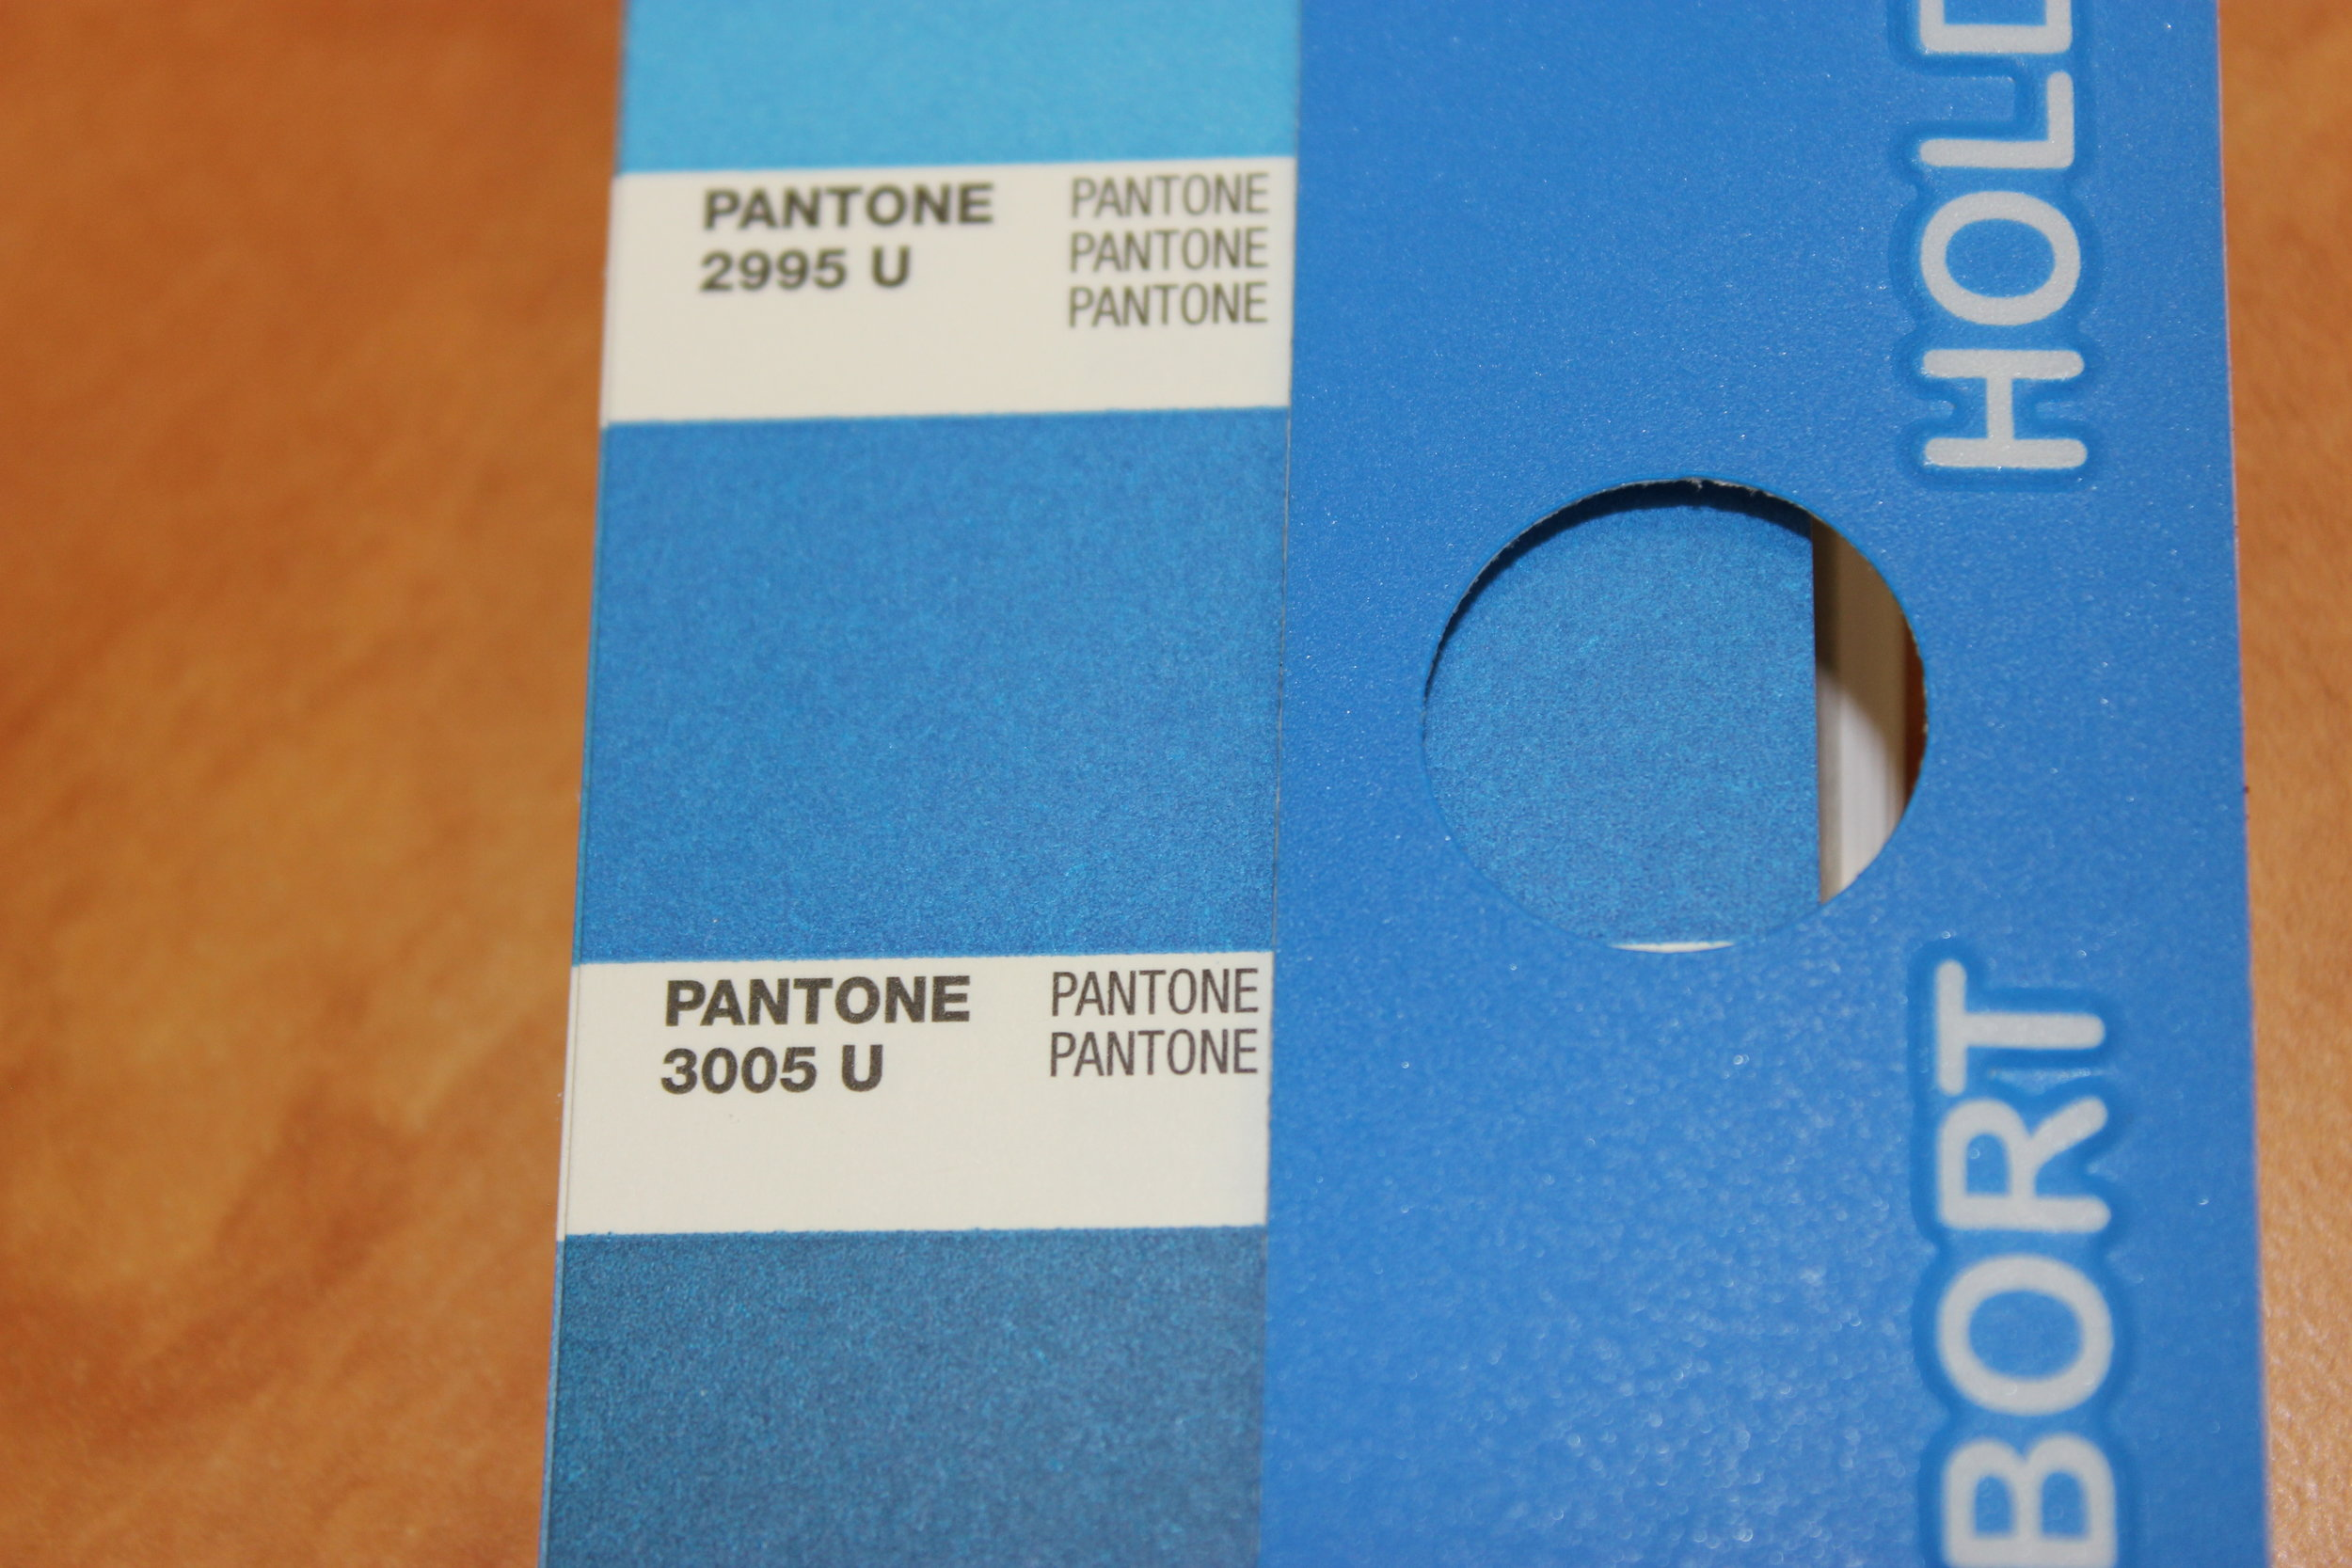 This Pantone booklet shows a matte finish, which was offset printed on paper, while the overlay uses the same color screen printed on plastic. To the trained eye, the colors are different - but still use the same formula. The cause for the difference in color: the material.